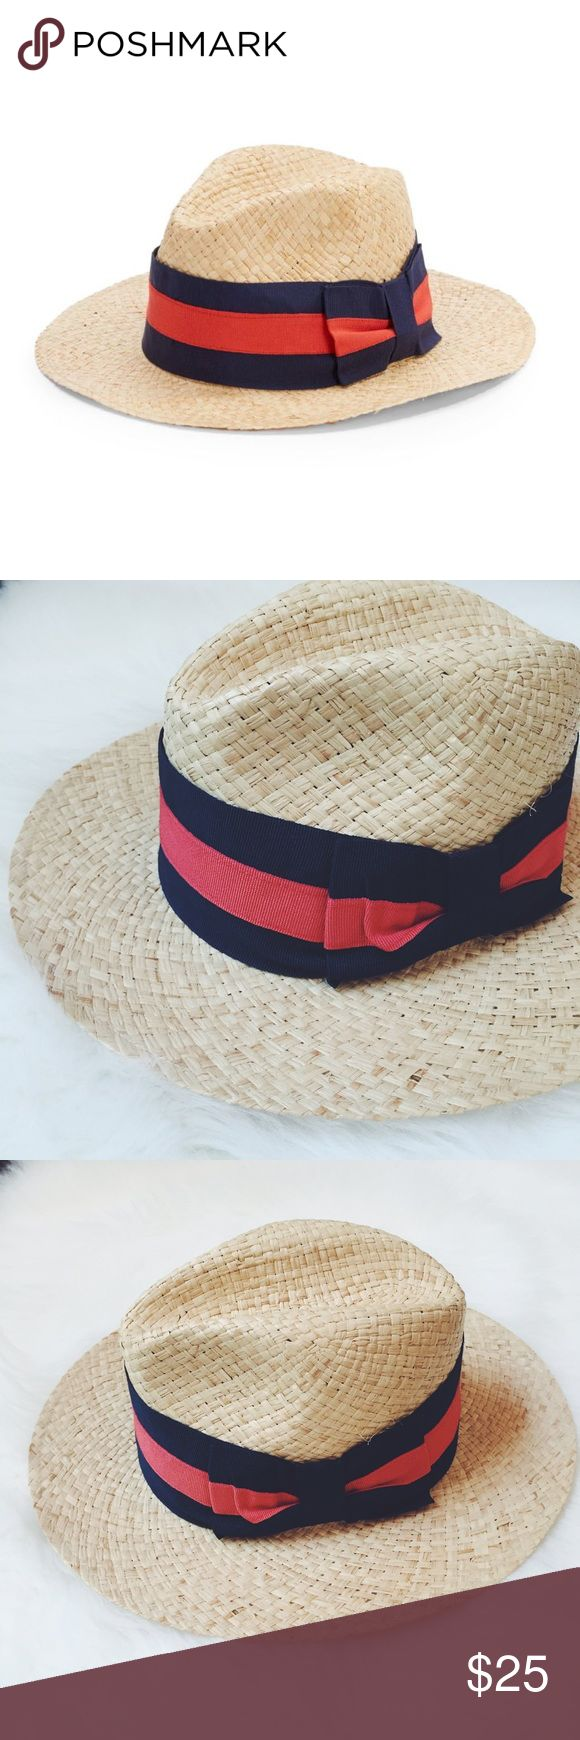 🎄SALE🎄SAKS FIFTH AVENUE Straw Hat Saks Fifth Avenue made in Italy Straw hat, 100% natural straw, do not wash, do not dry clean, do not bleach, do not iron. Band/bow is navy/red. Brand new without tags, never wore it.                      ✅🎉FINAL PRICE🎉✅         🎄10% off bundle of 2 items or more!🎄                             •NO TRADING                             •reasonable offers                             •smoke free Saks Fifth Avenue Accessories Hats